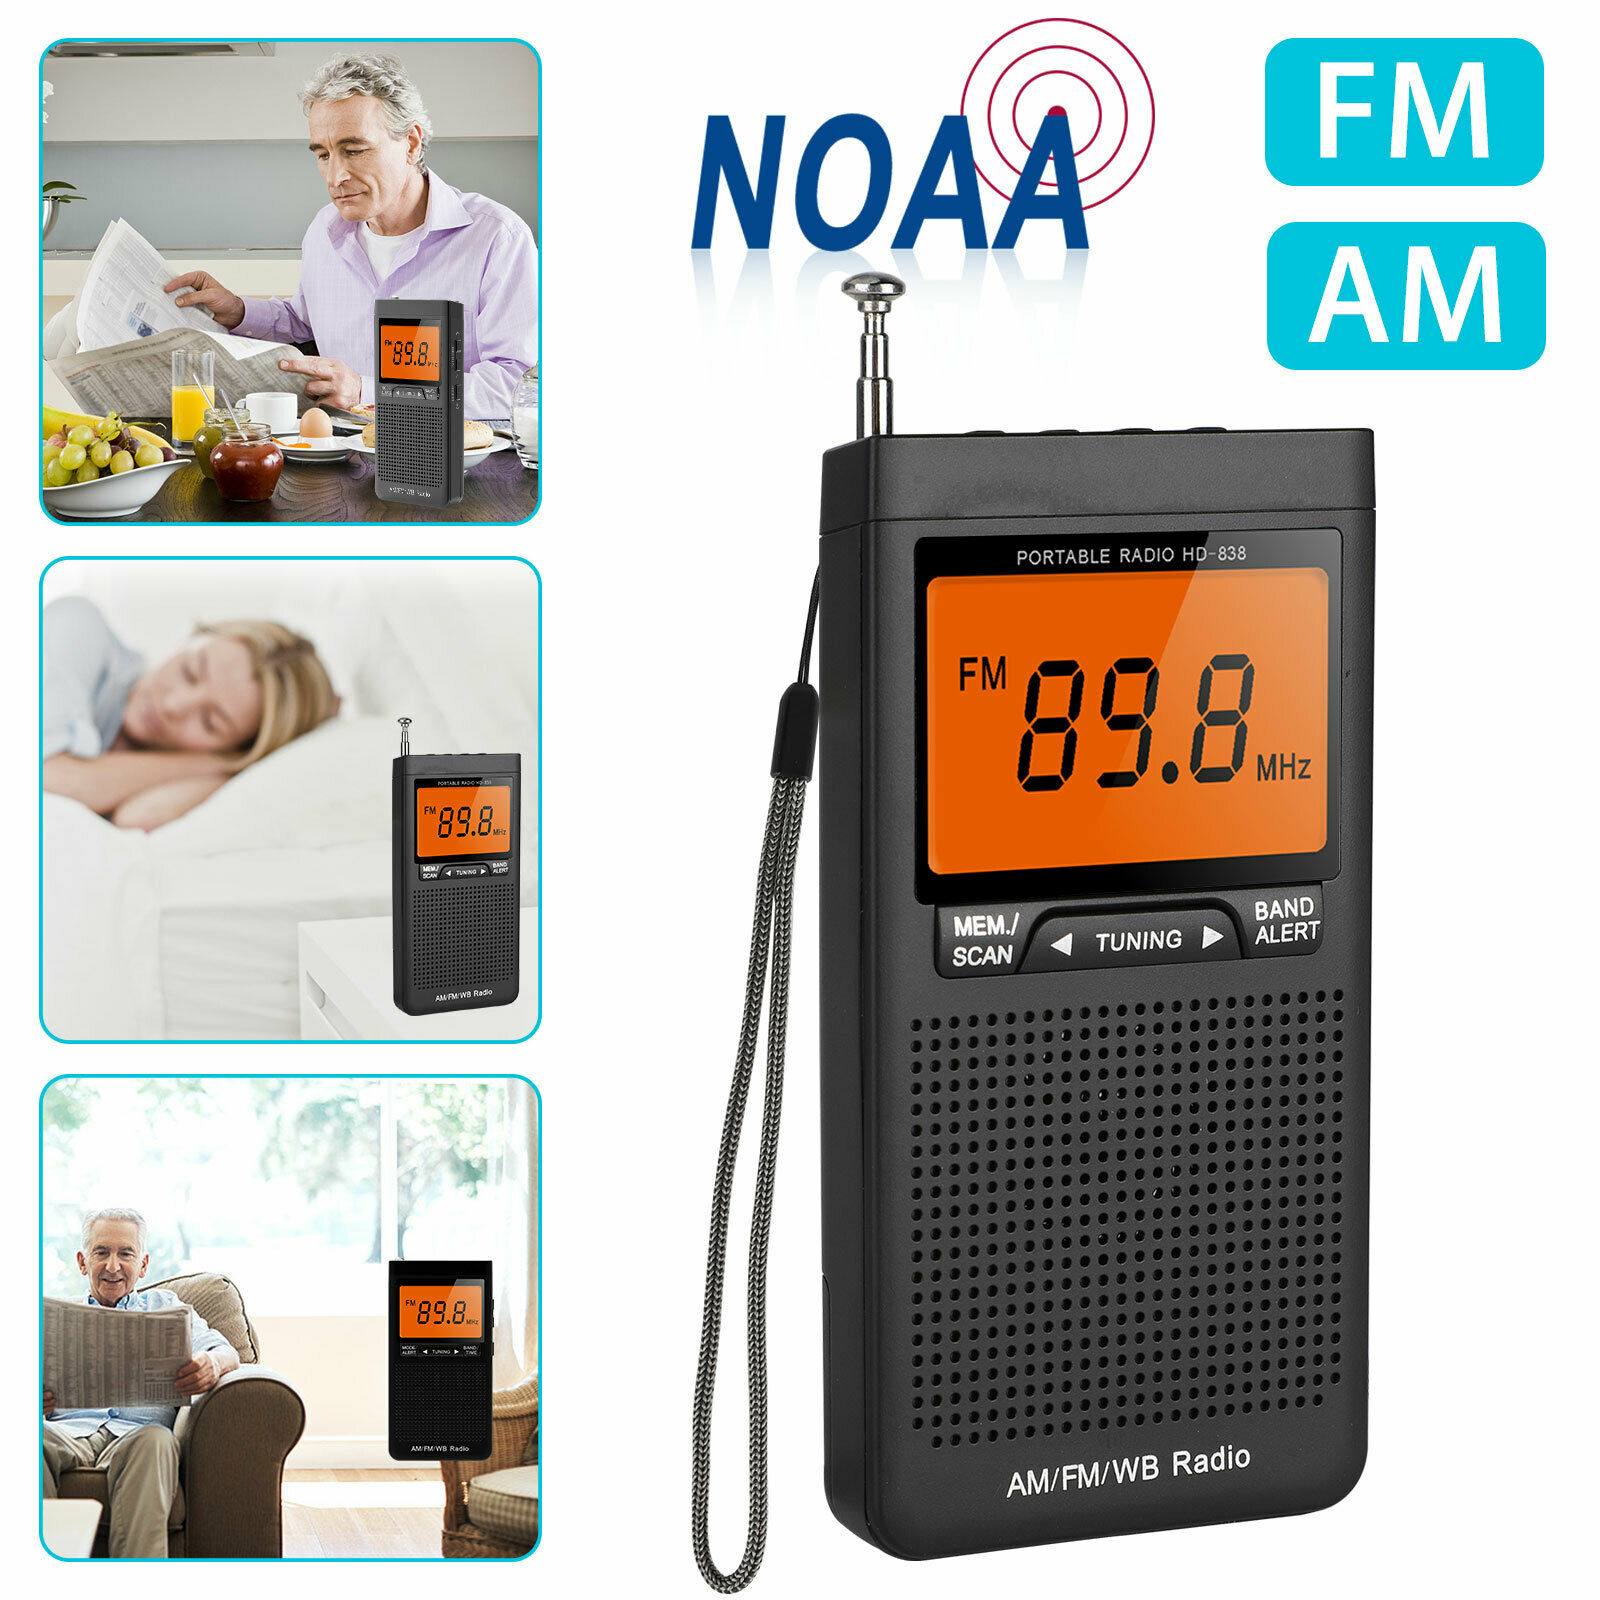 Mini AM FM Radio Portable Speaker With Headphone Jack Alarm Clock Emergency Weather Radio Station Pocket Radio Speaker Outdoor